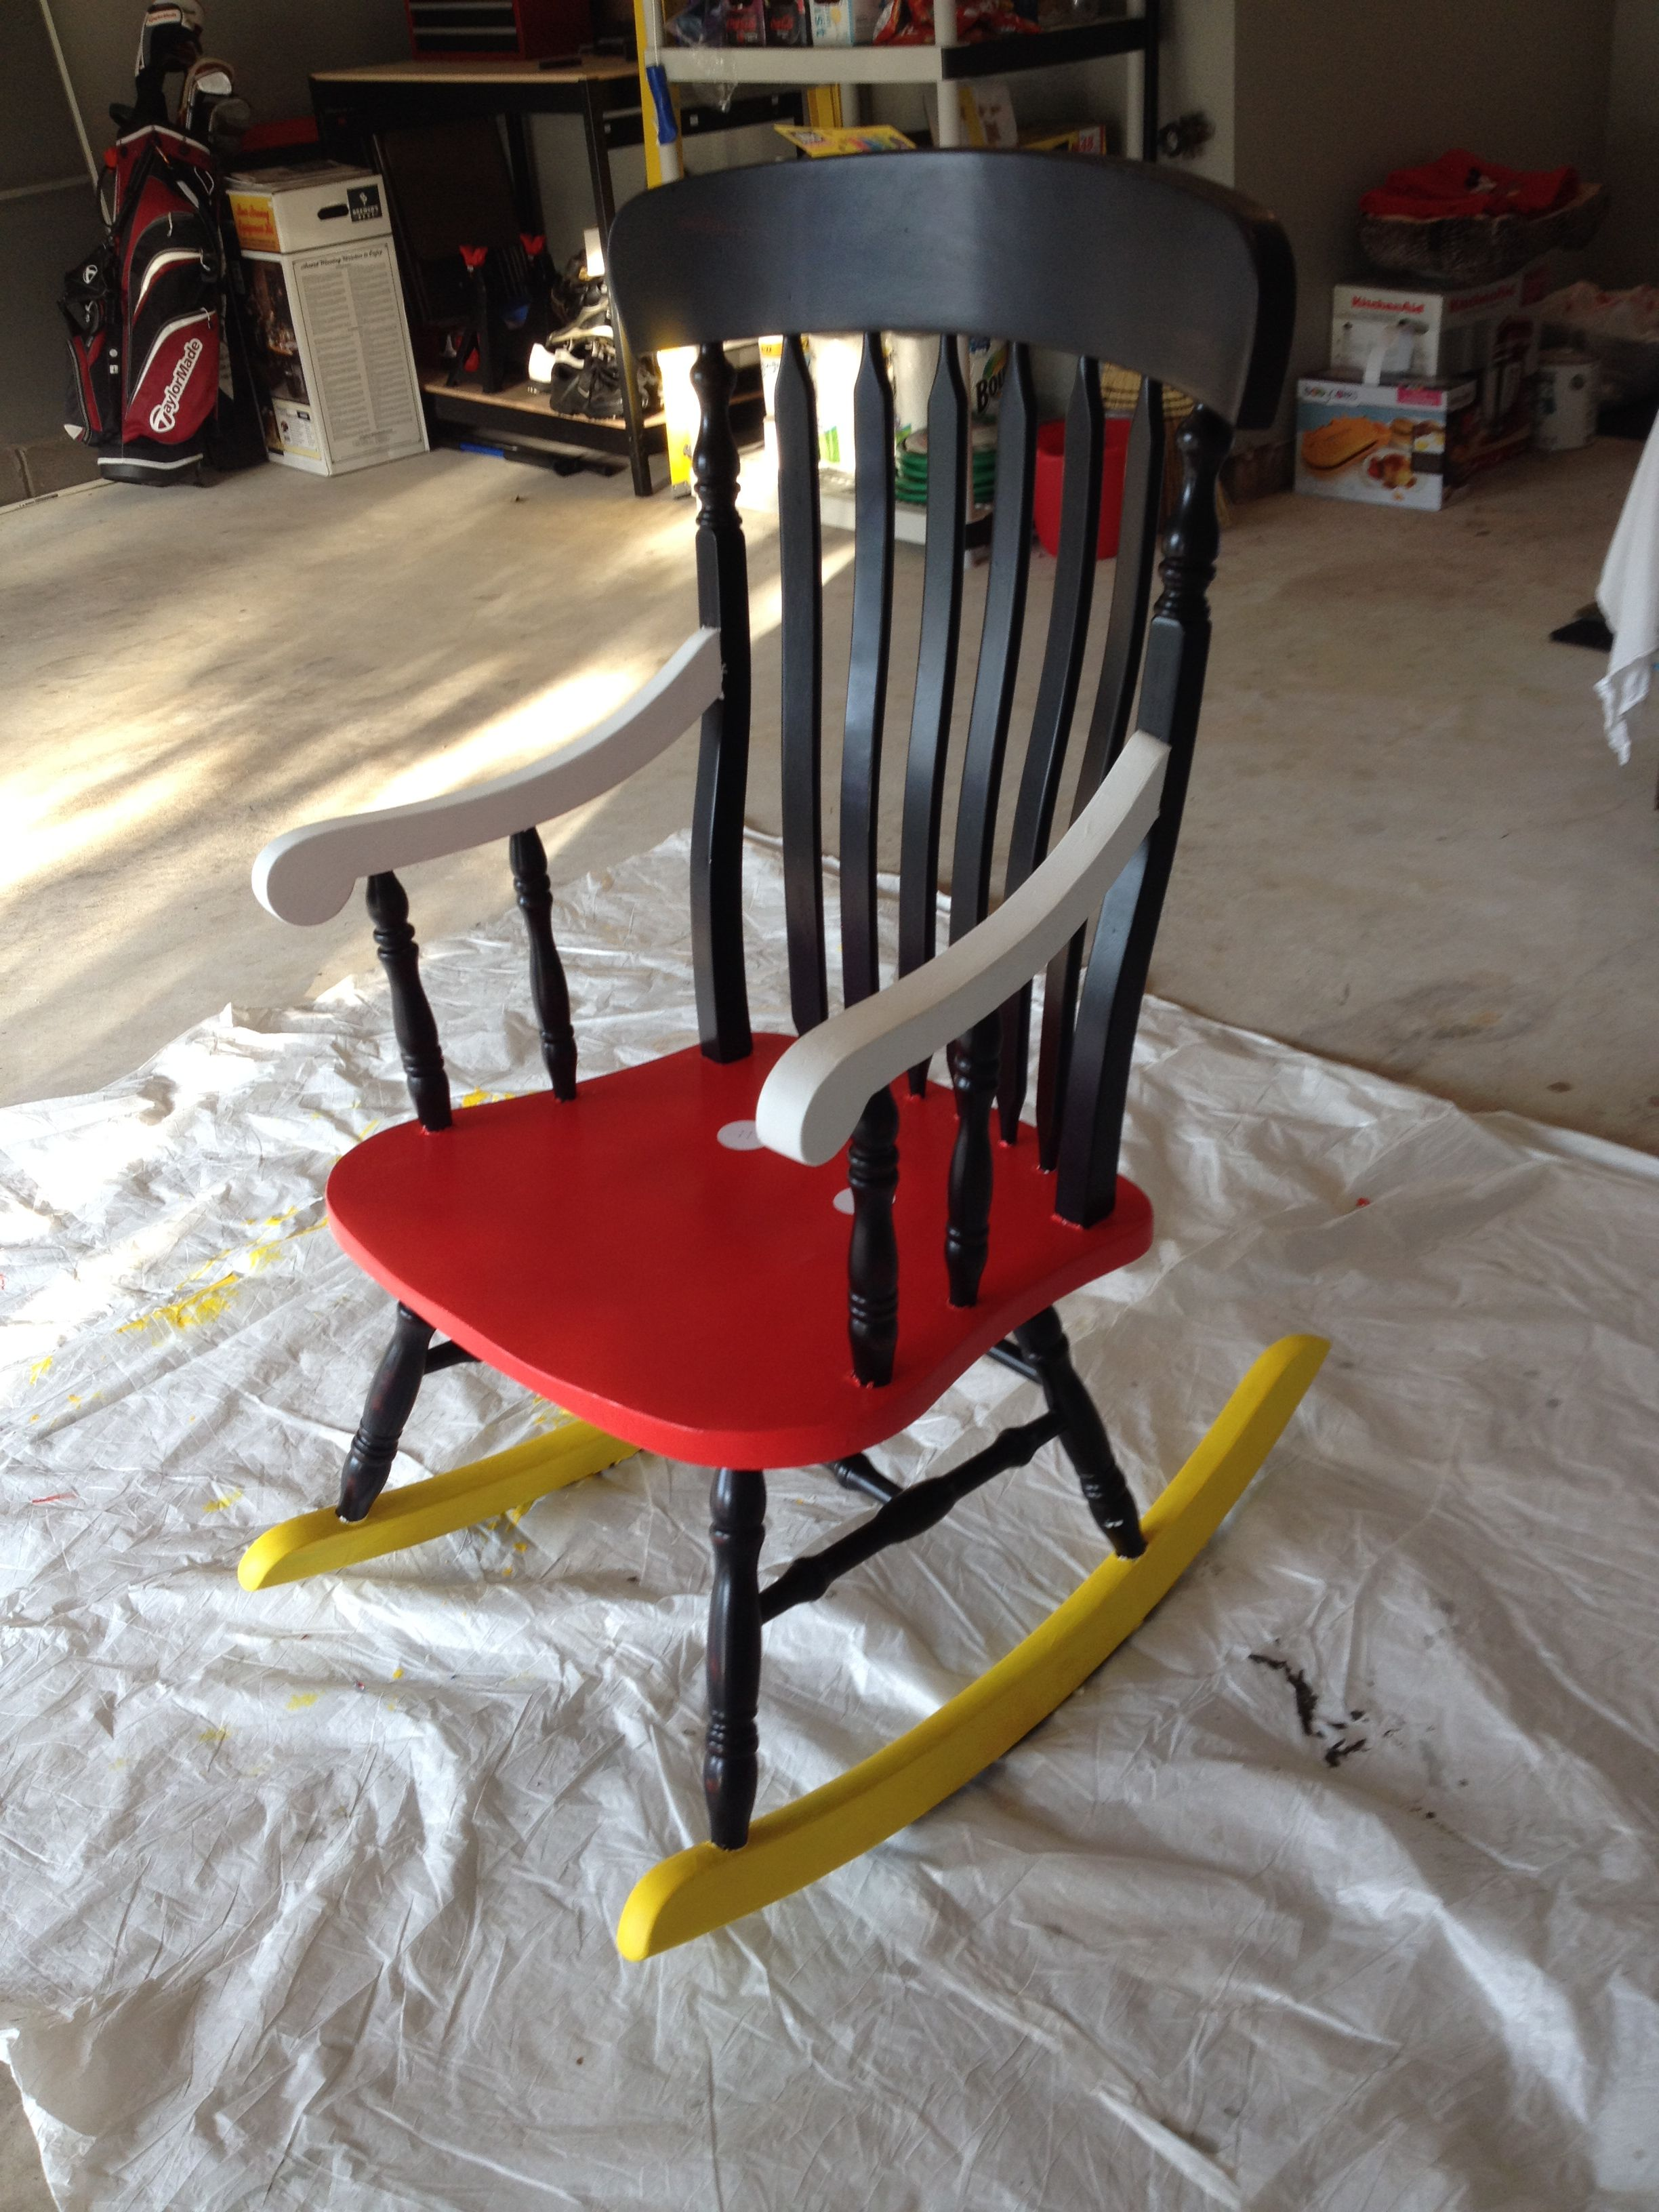 My Best Friendu0027s Amazing Mickey Mouse Chair For Her Classroom! @meggiej13